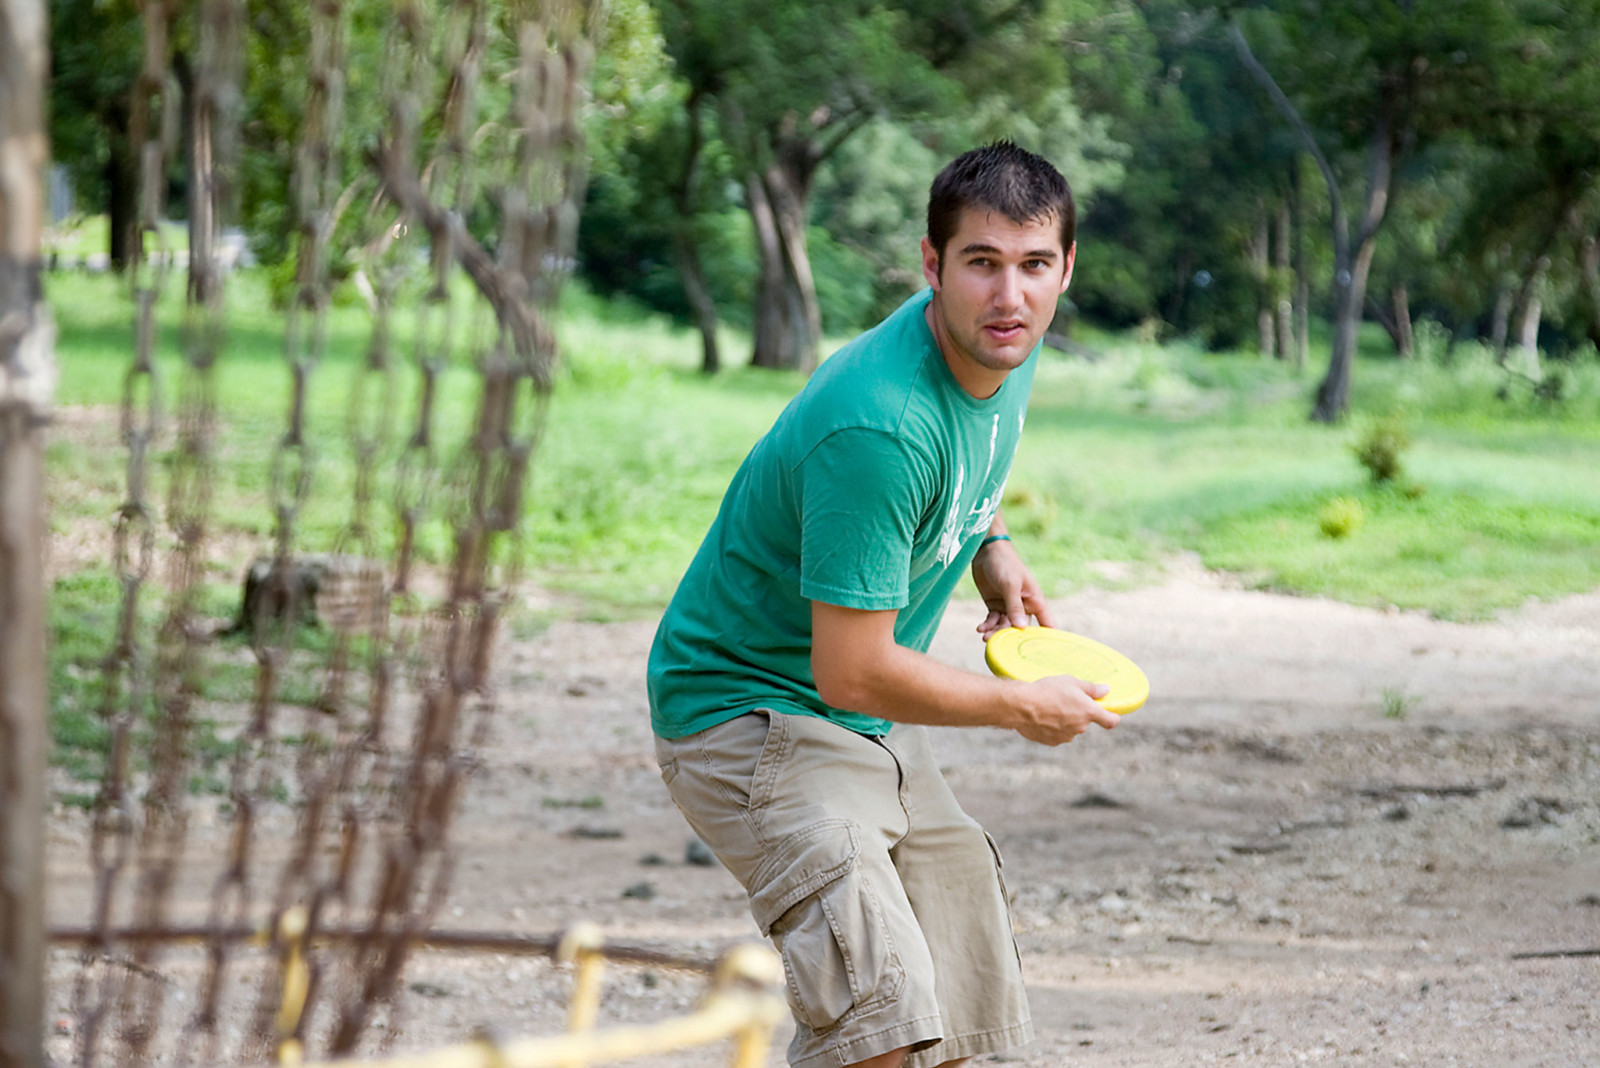 Young man playing frisbee golf